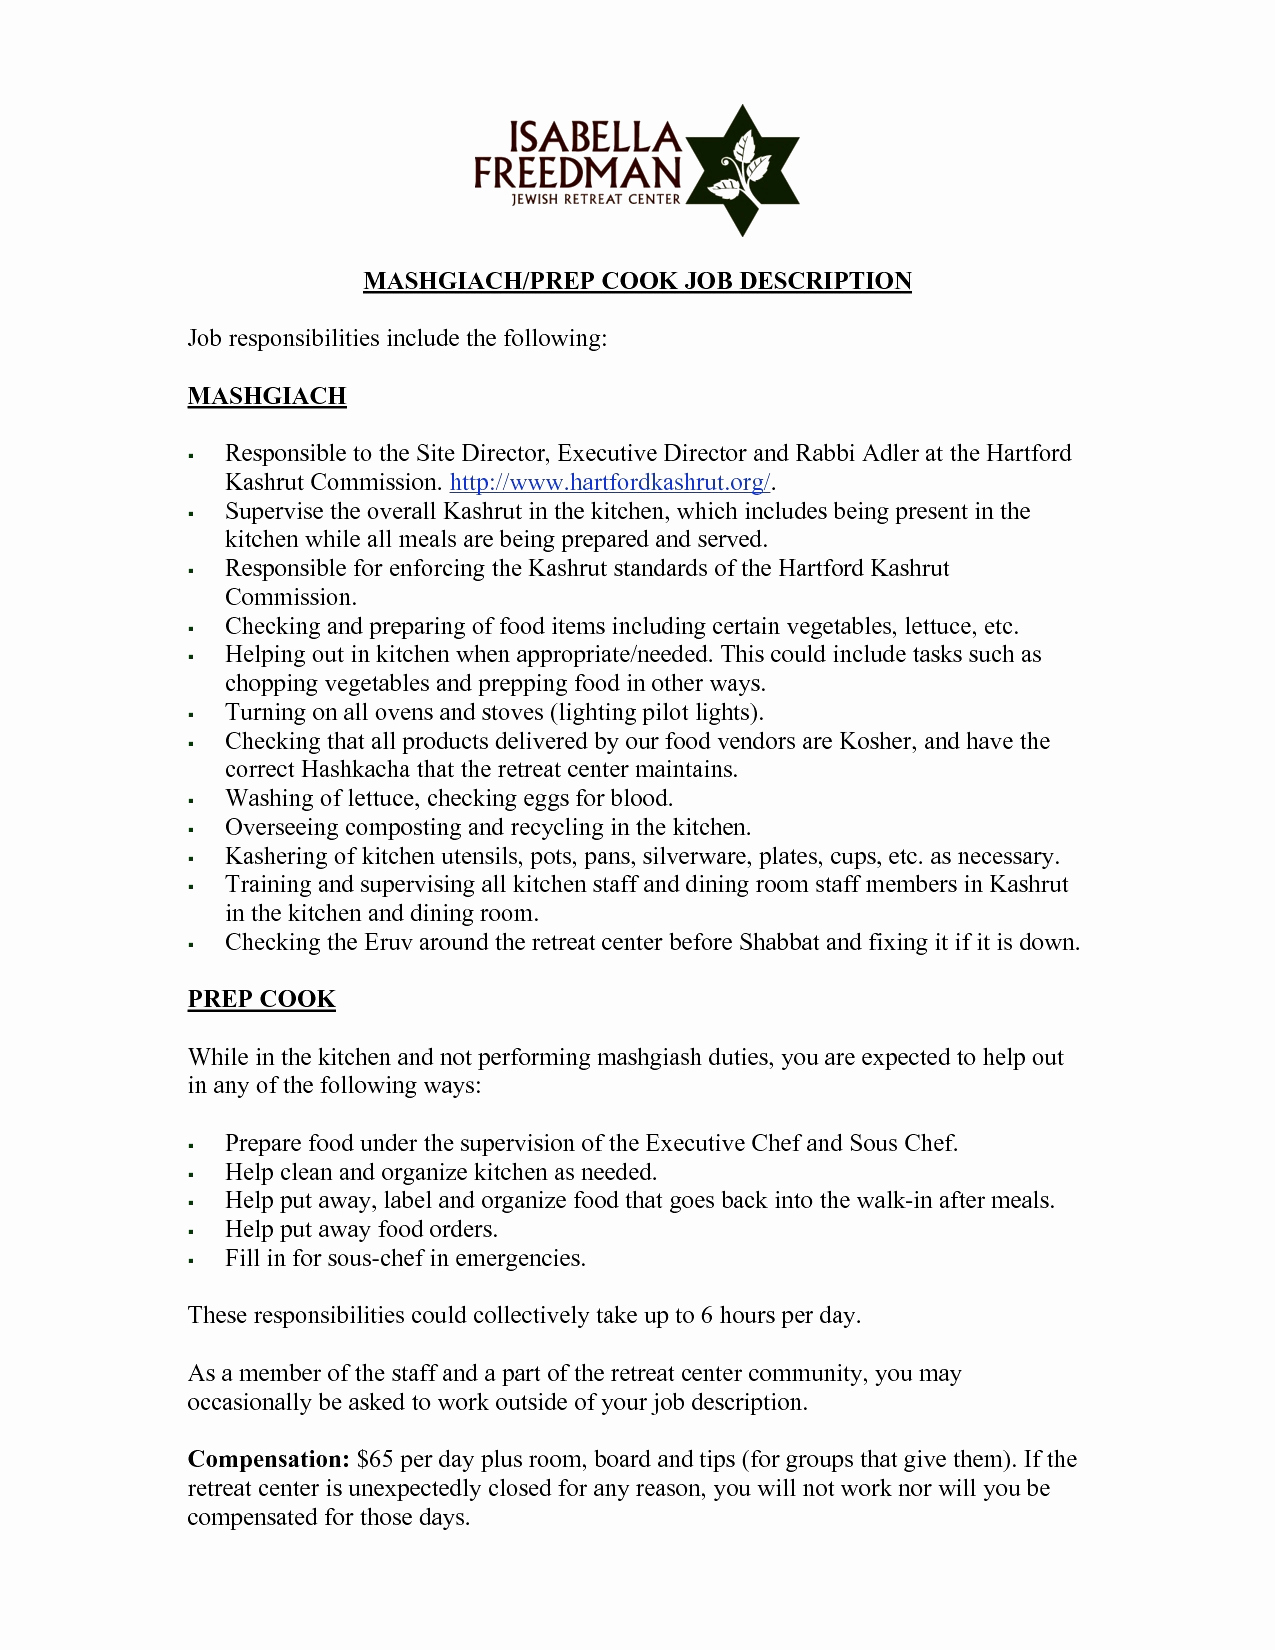 Letter to Shareholders Template - Cover Letter and Resume Examples Beautiful Example Resume Cover